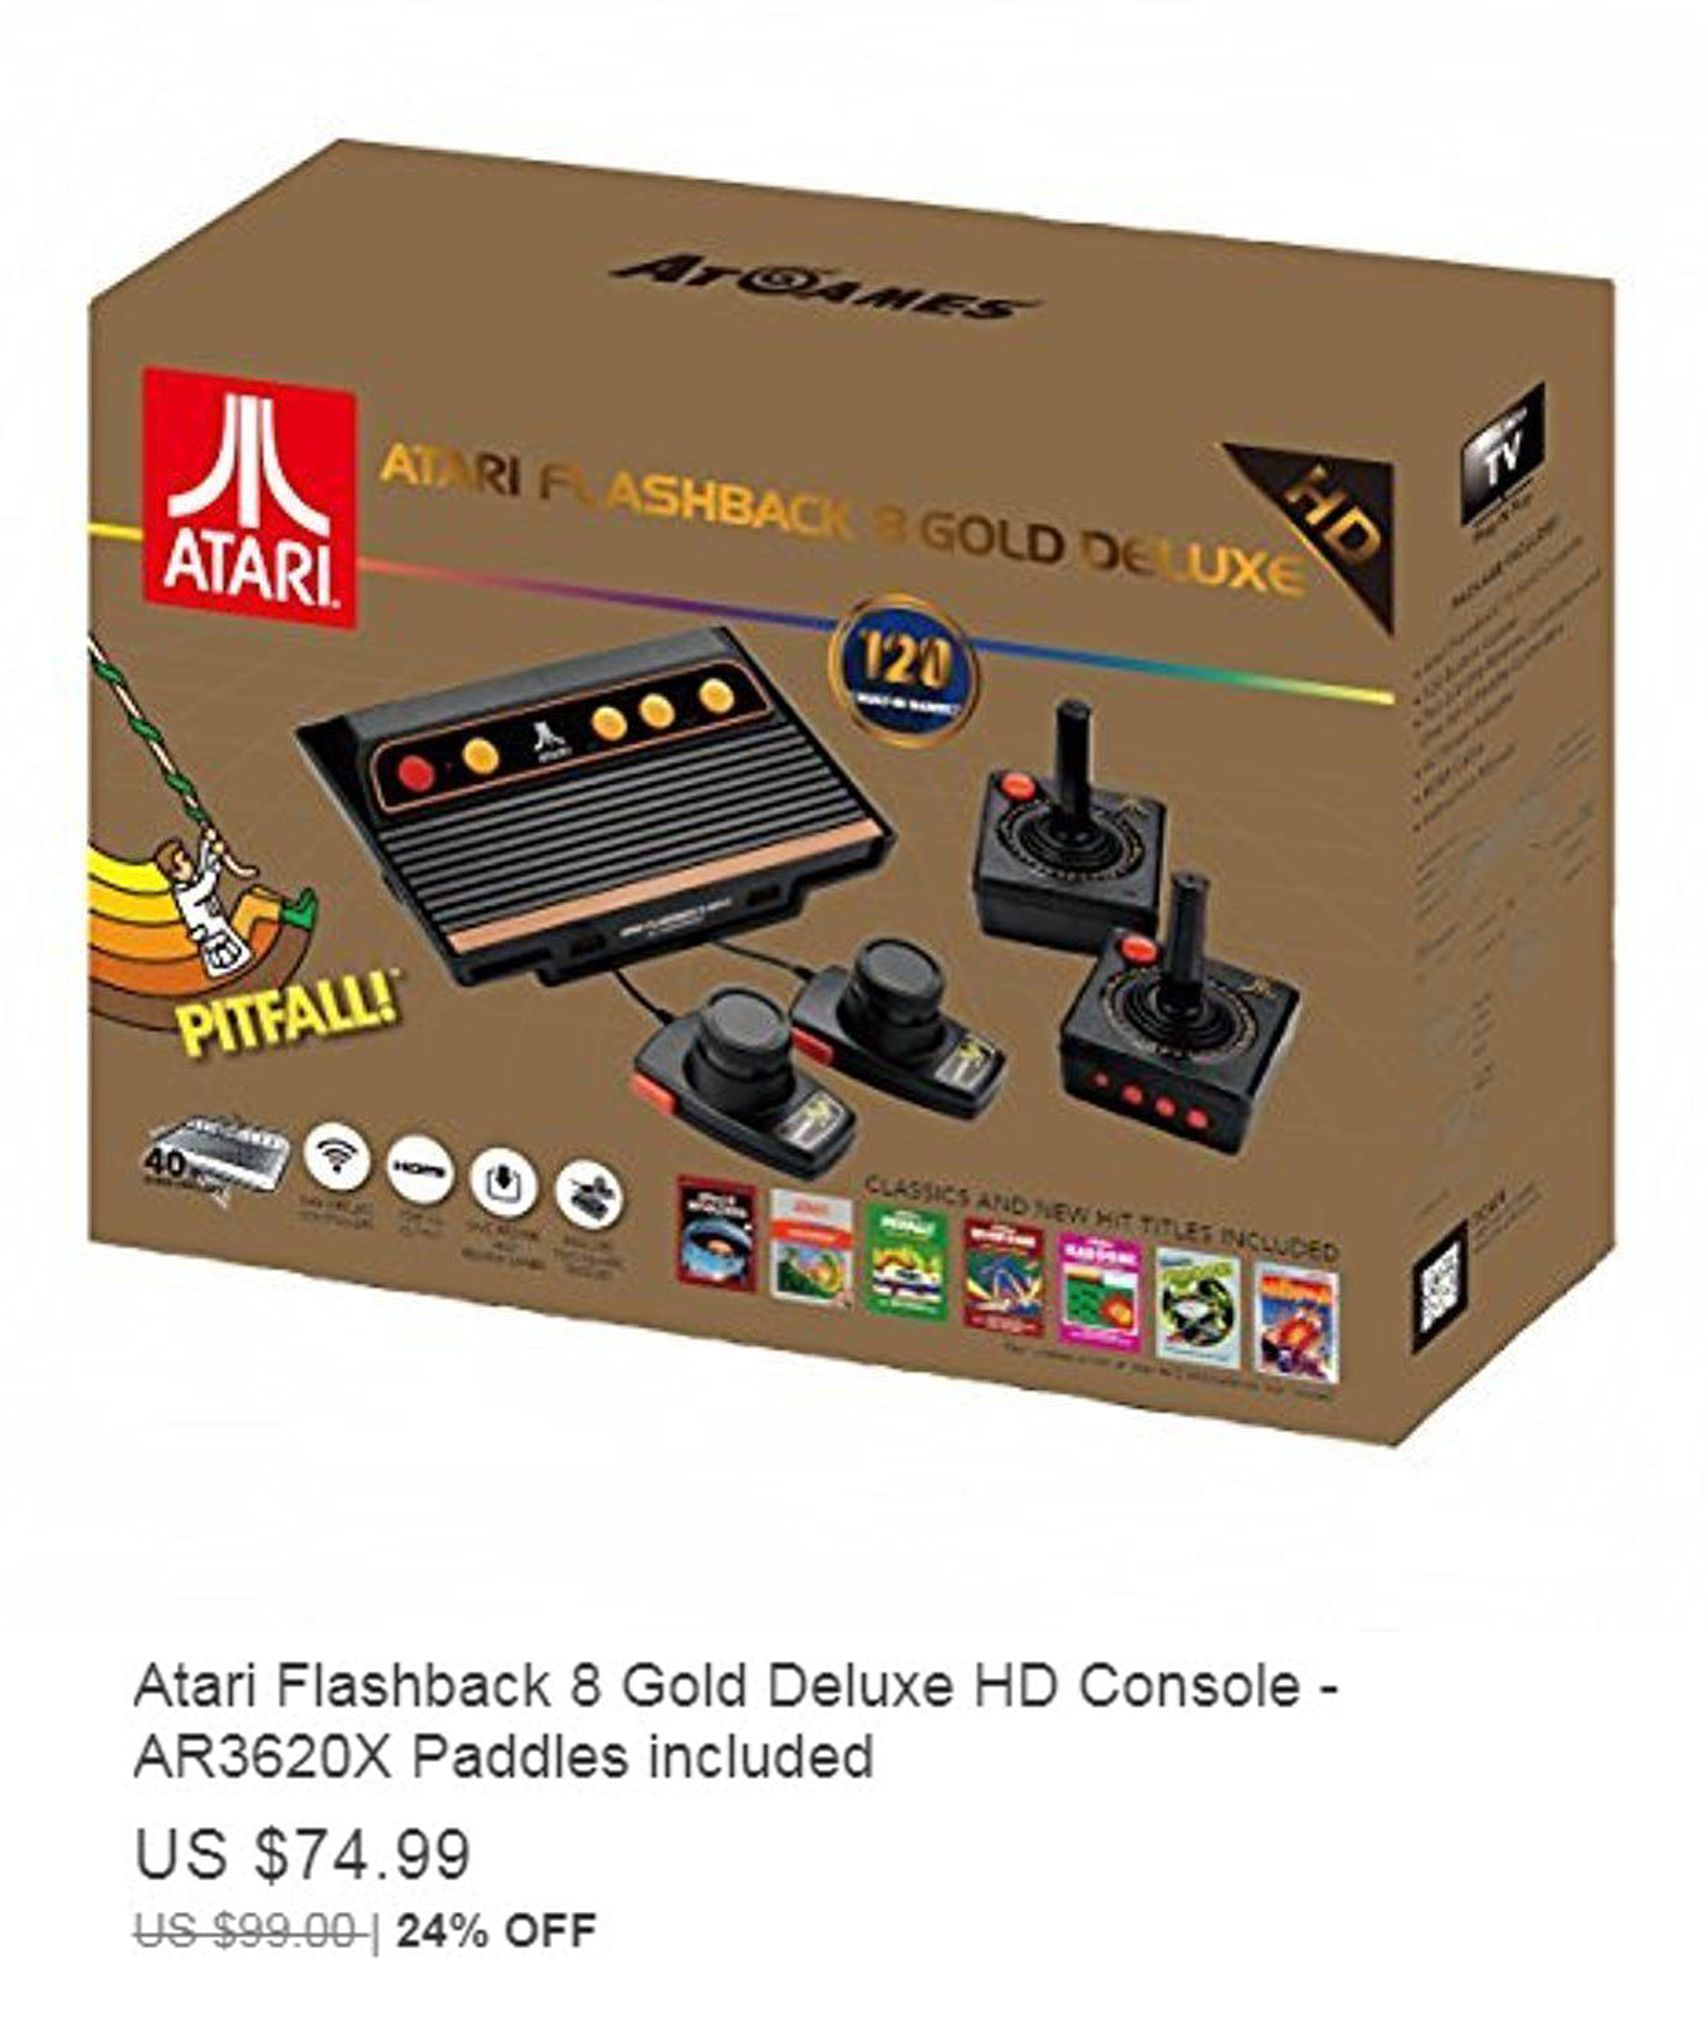 Atari Flashback 8 Gold Deluxe Hd Console Ar3620x Paddles